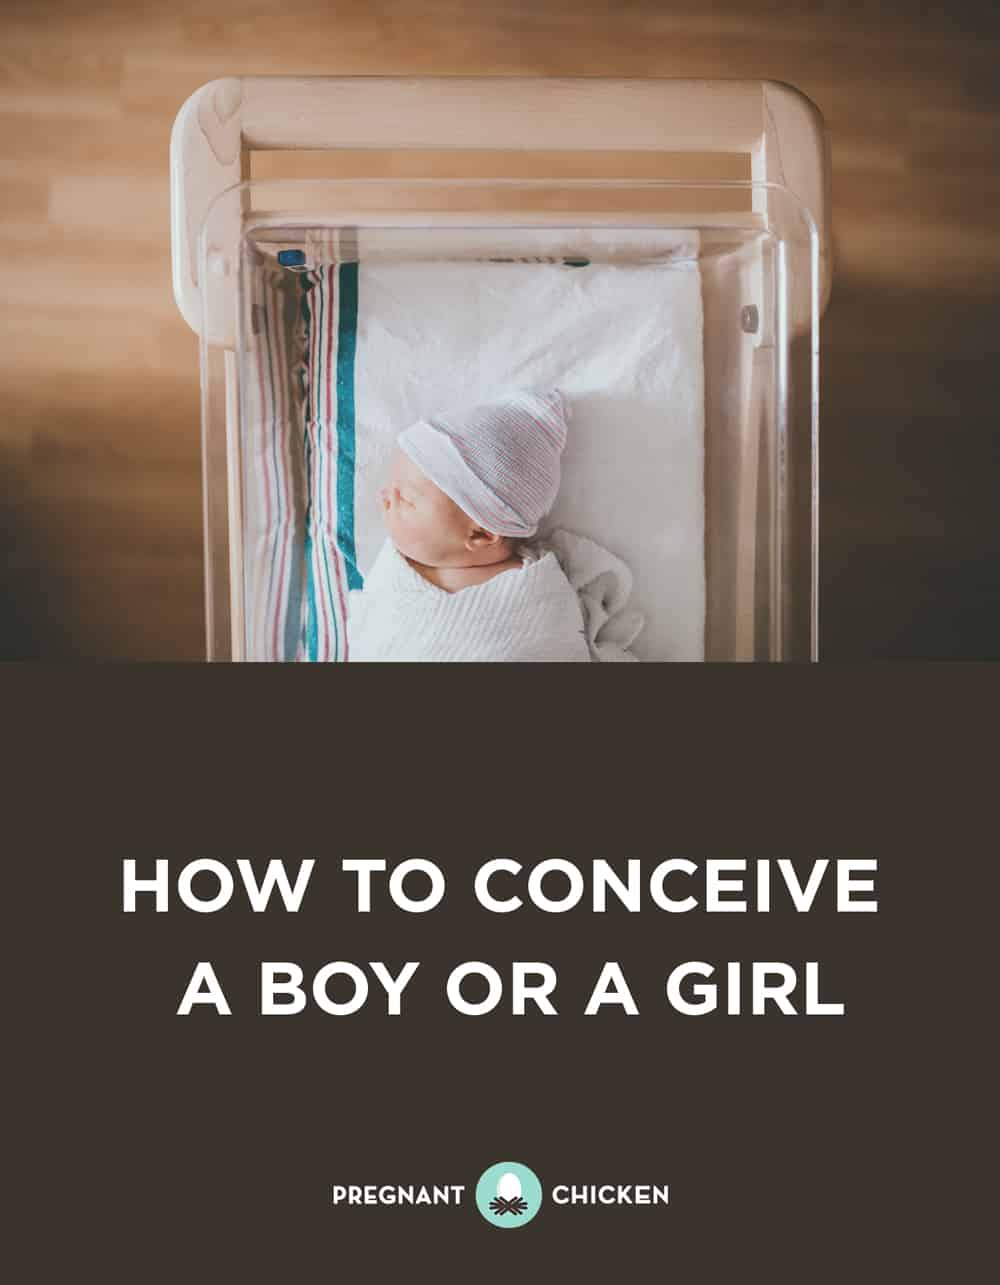 How to Conceive a Boy or a Girl